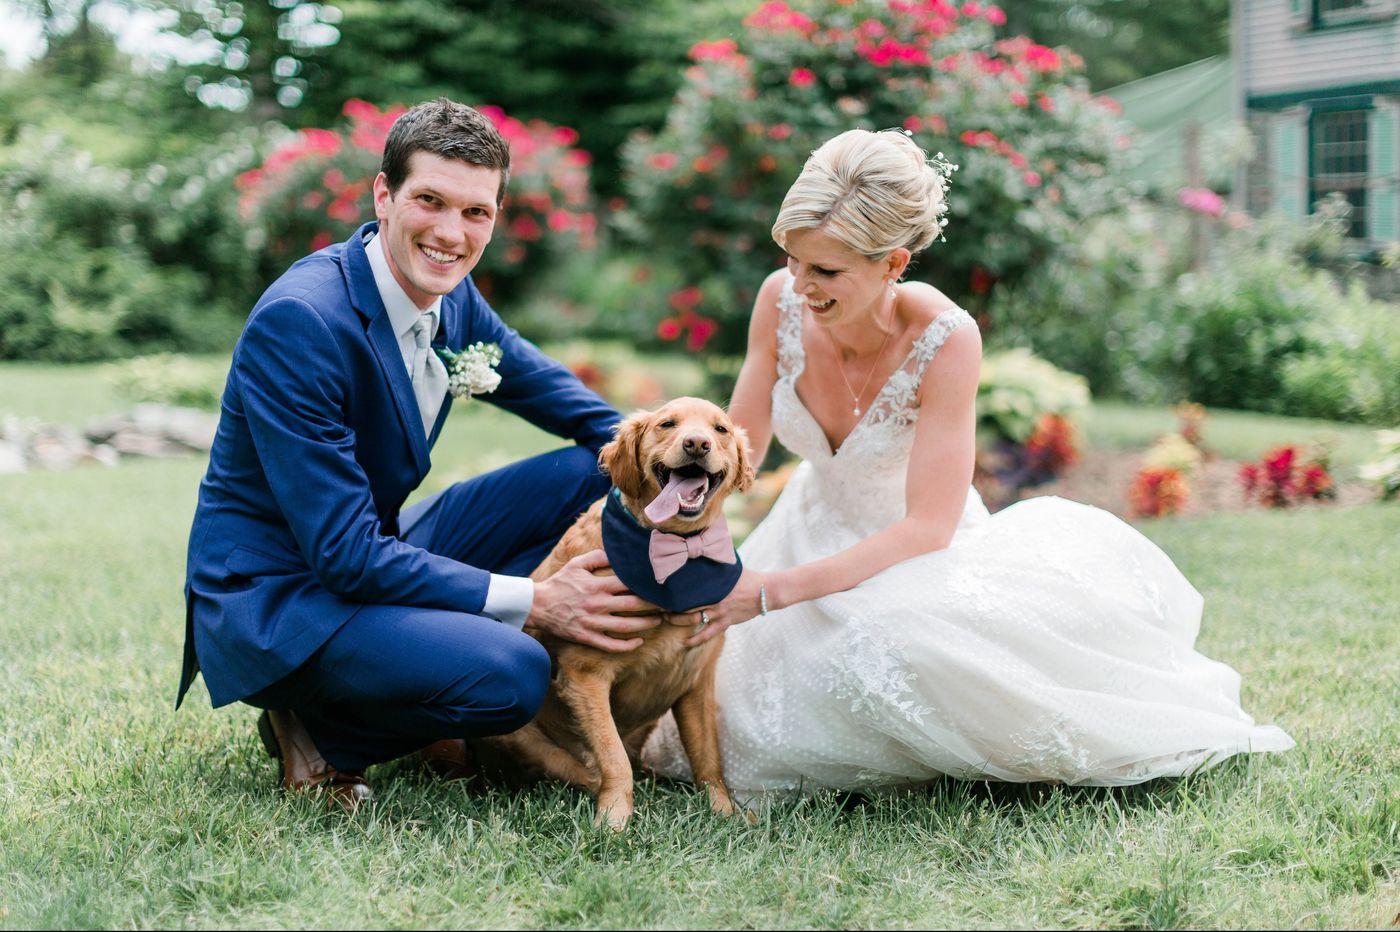 Philadelphia weddings: Chelsea Miles and Scott Derkacz